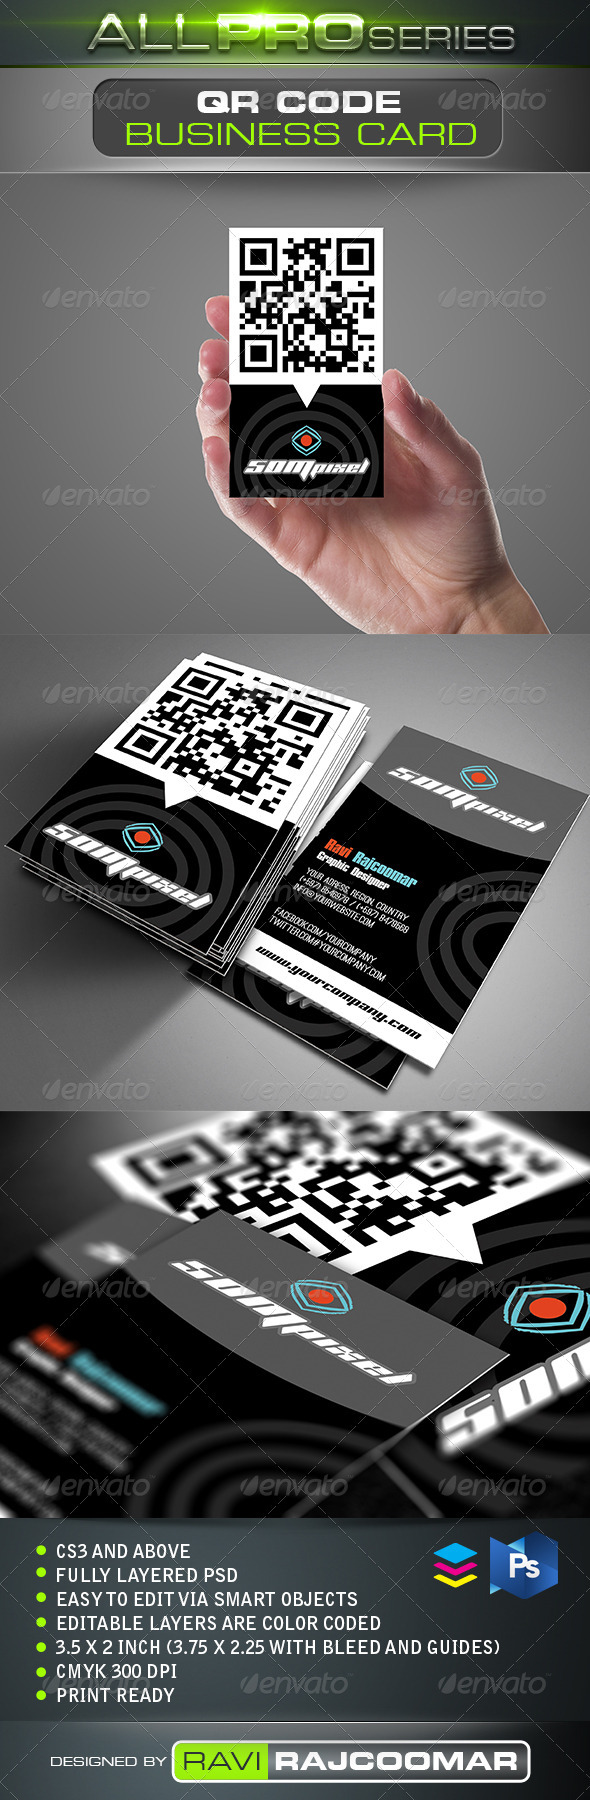 QR Code Business Card | Qr code business card, Qr codes and Business ...